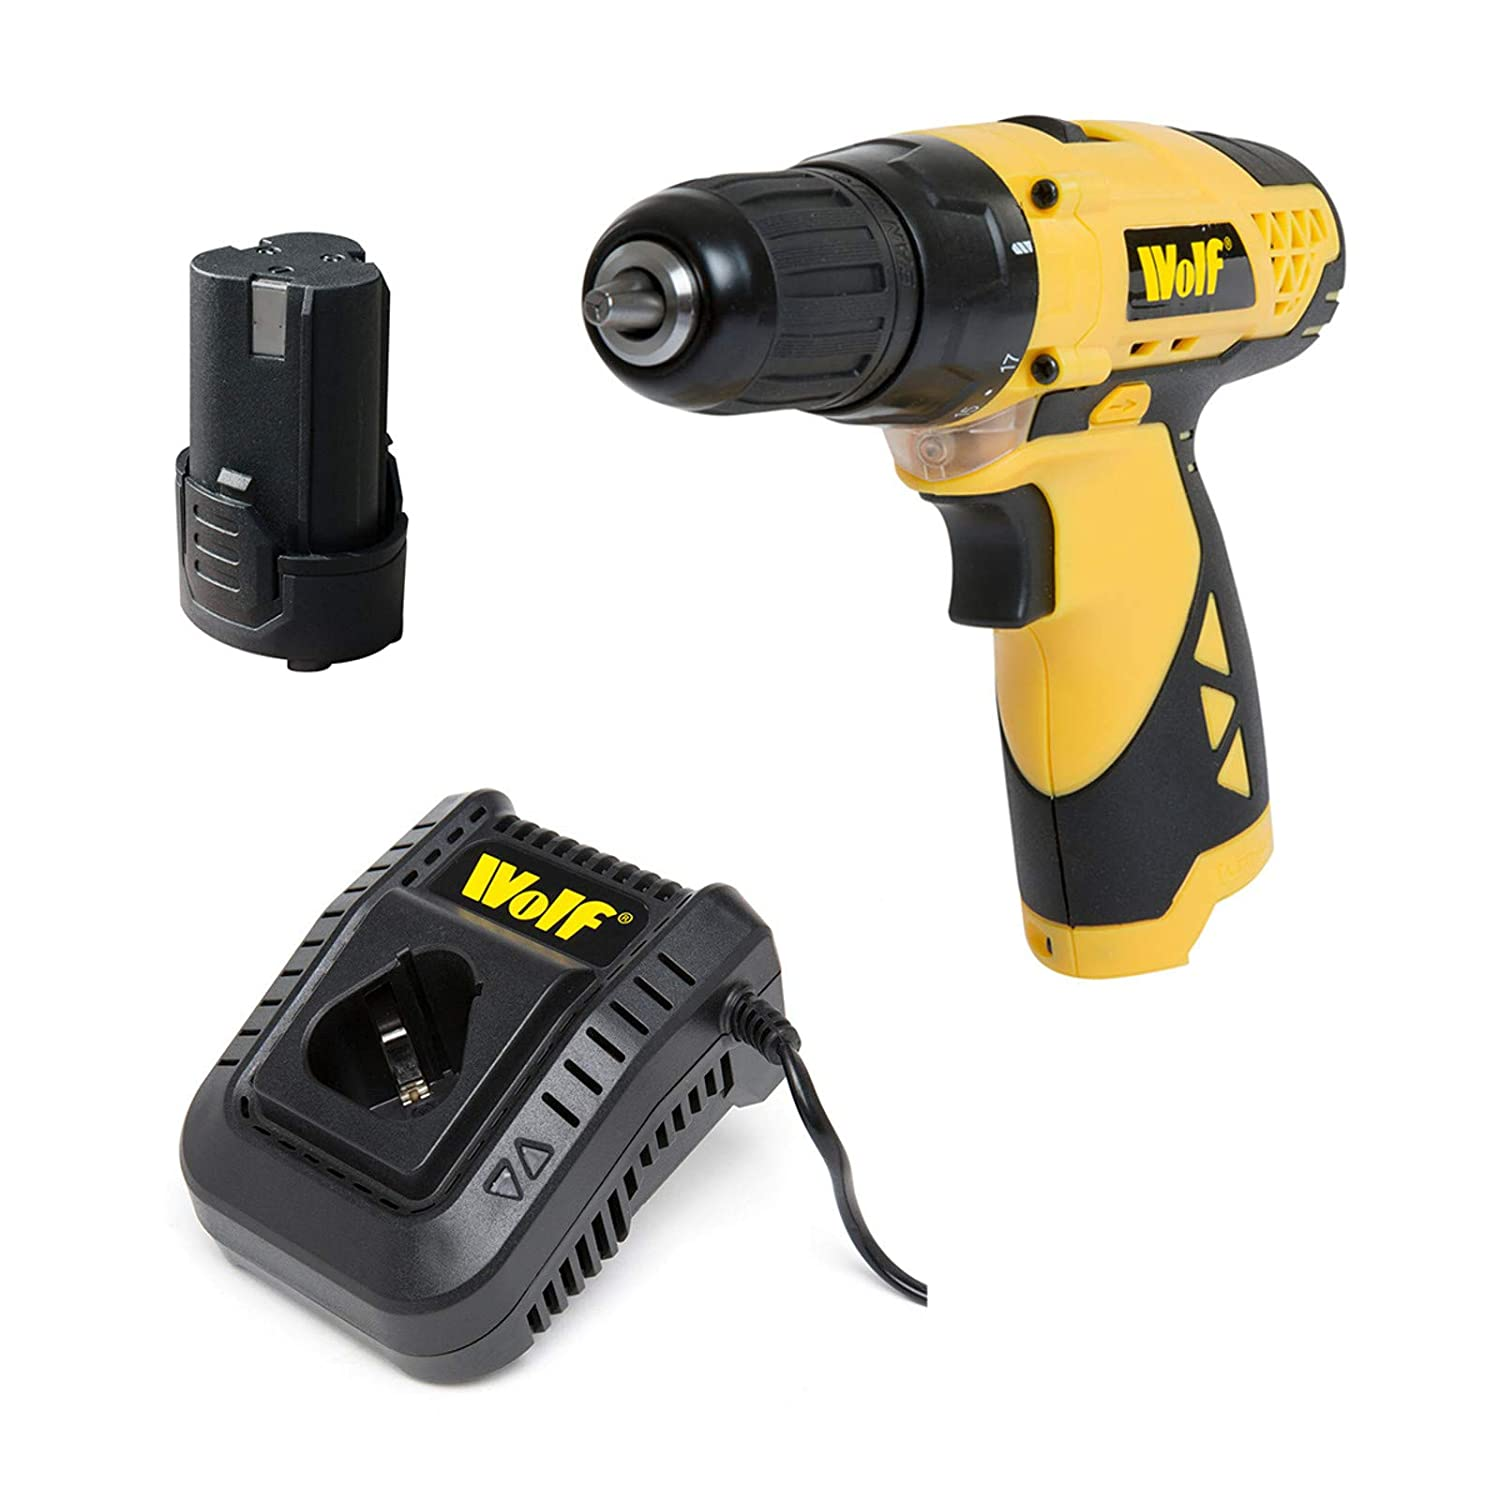 Wolf A Cordless Drill Driver 12v Keyless Chuck Lithium Ion Battery /& Charger